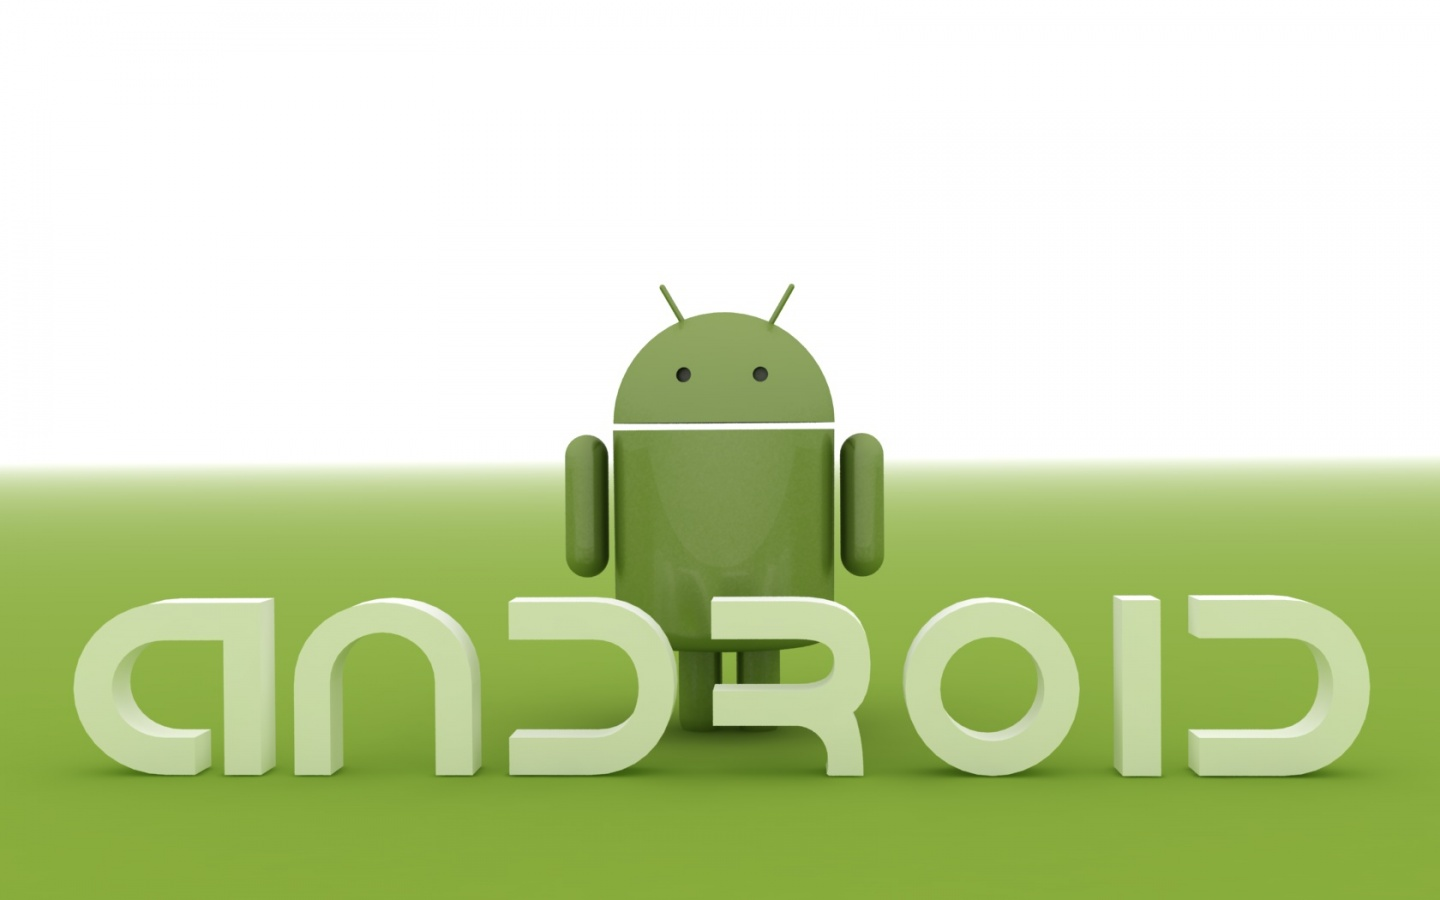 android_logo_verde-1440x900